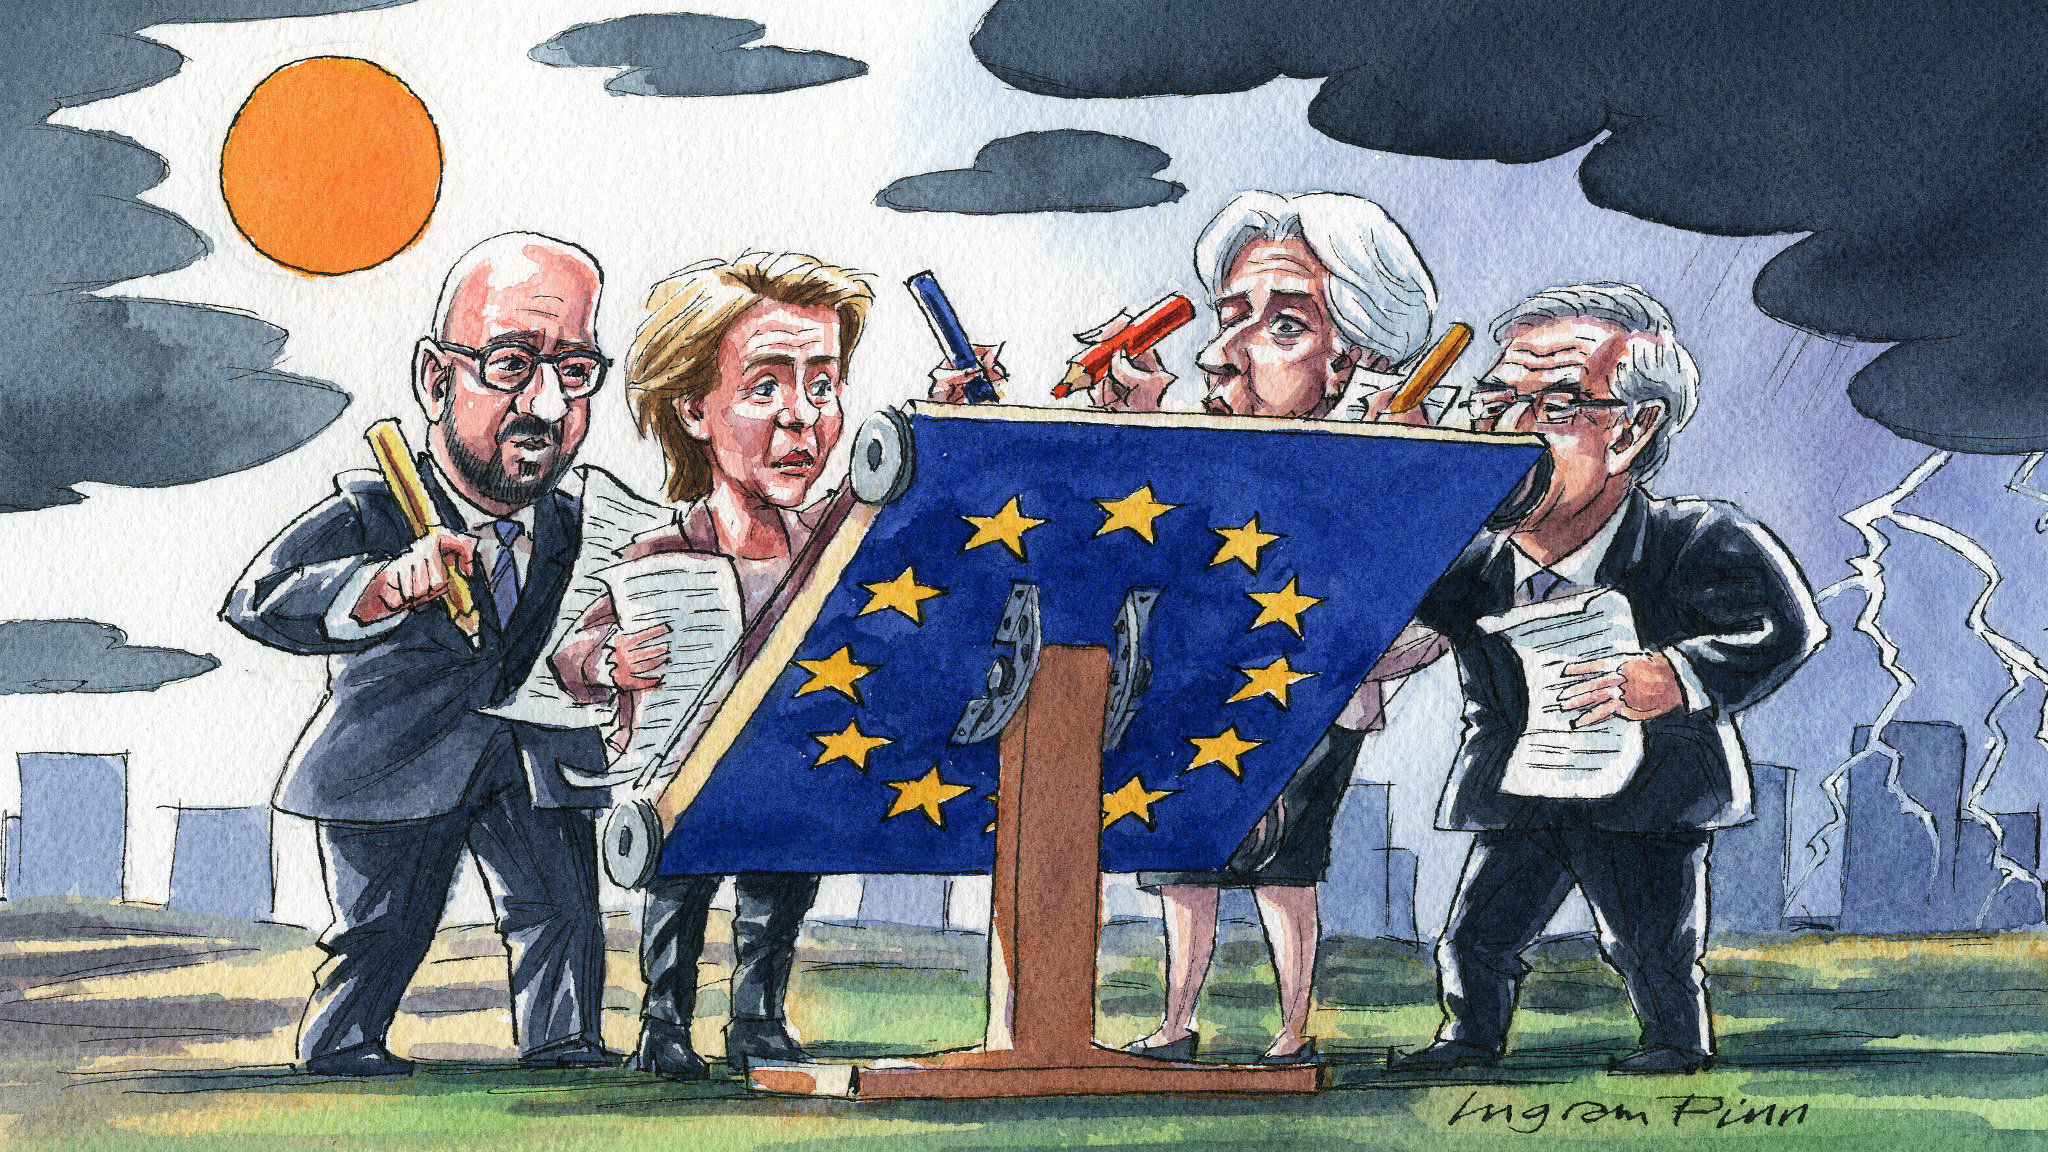 Europe must learn to expect the unexpected